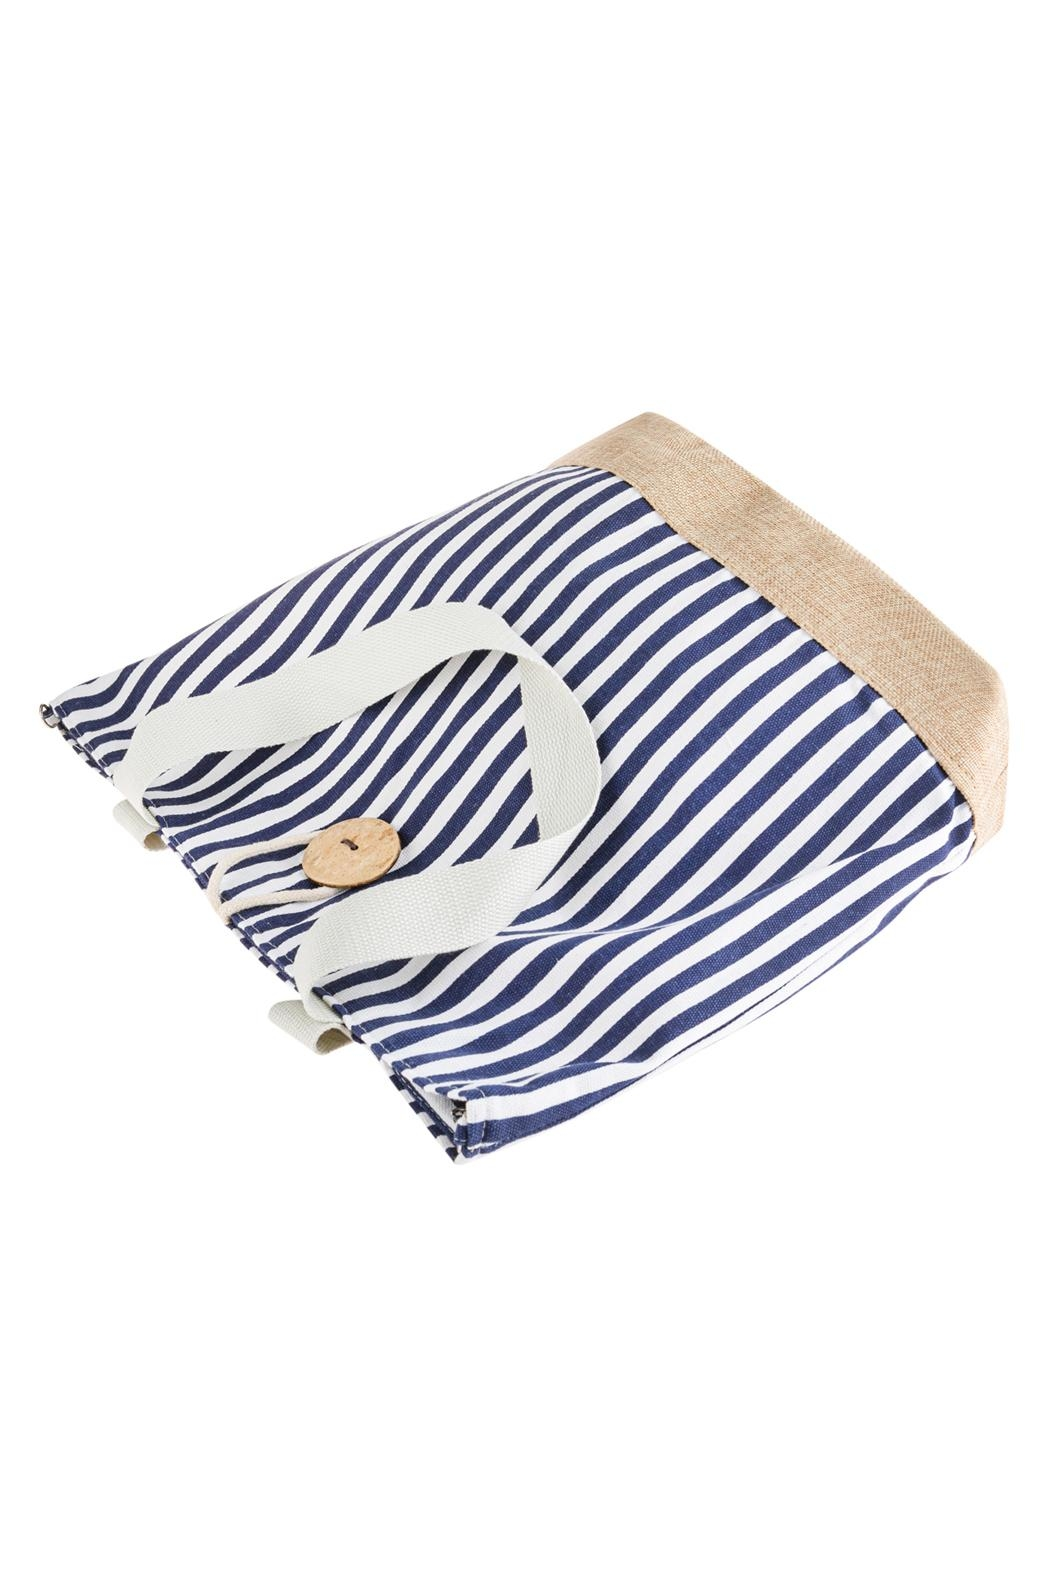 Riah Fashion Striped Tote Bag With Coconut Shell Button Tie Lock - Front Full Image